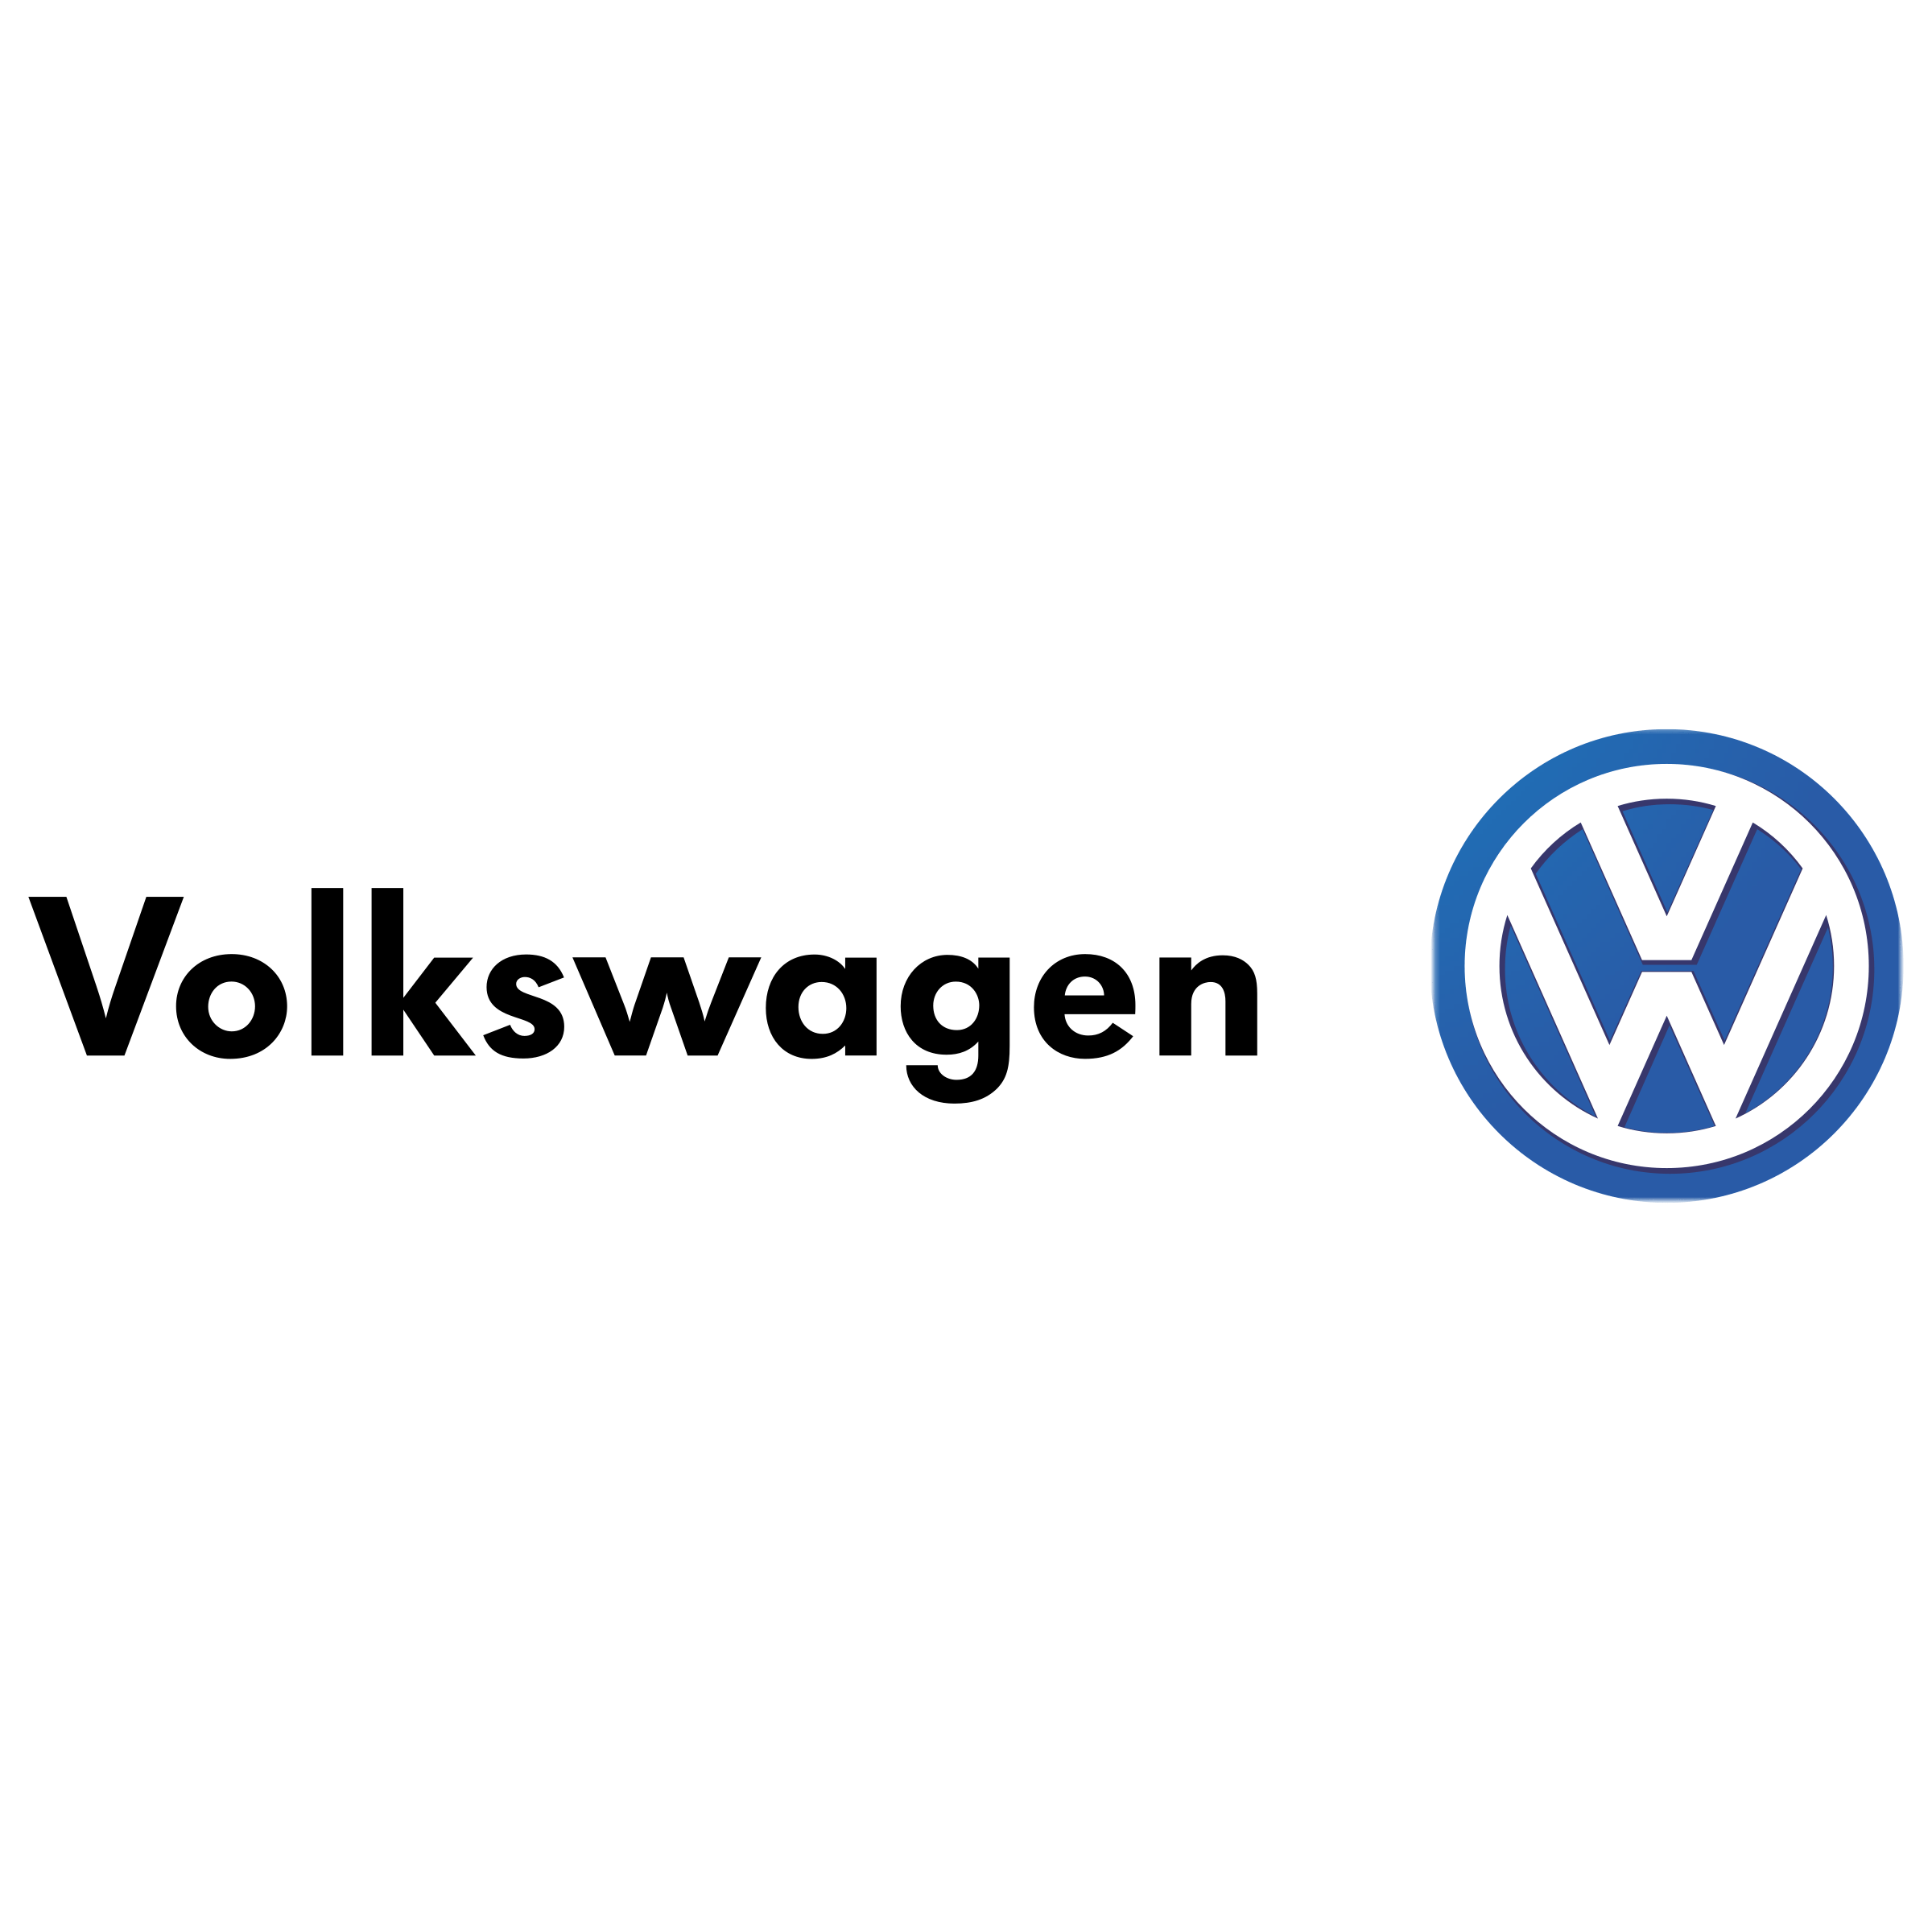 Volkswagen Logo - Volkswagen Logo PNG Transparent & SVG Vector - Freebie Supply